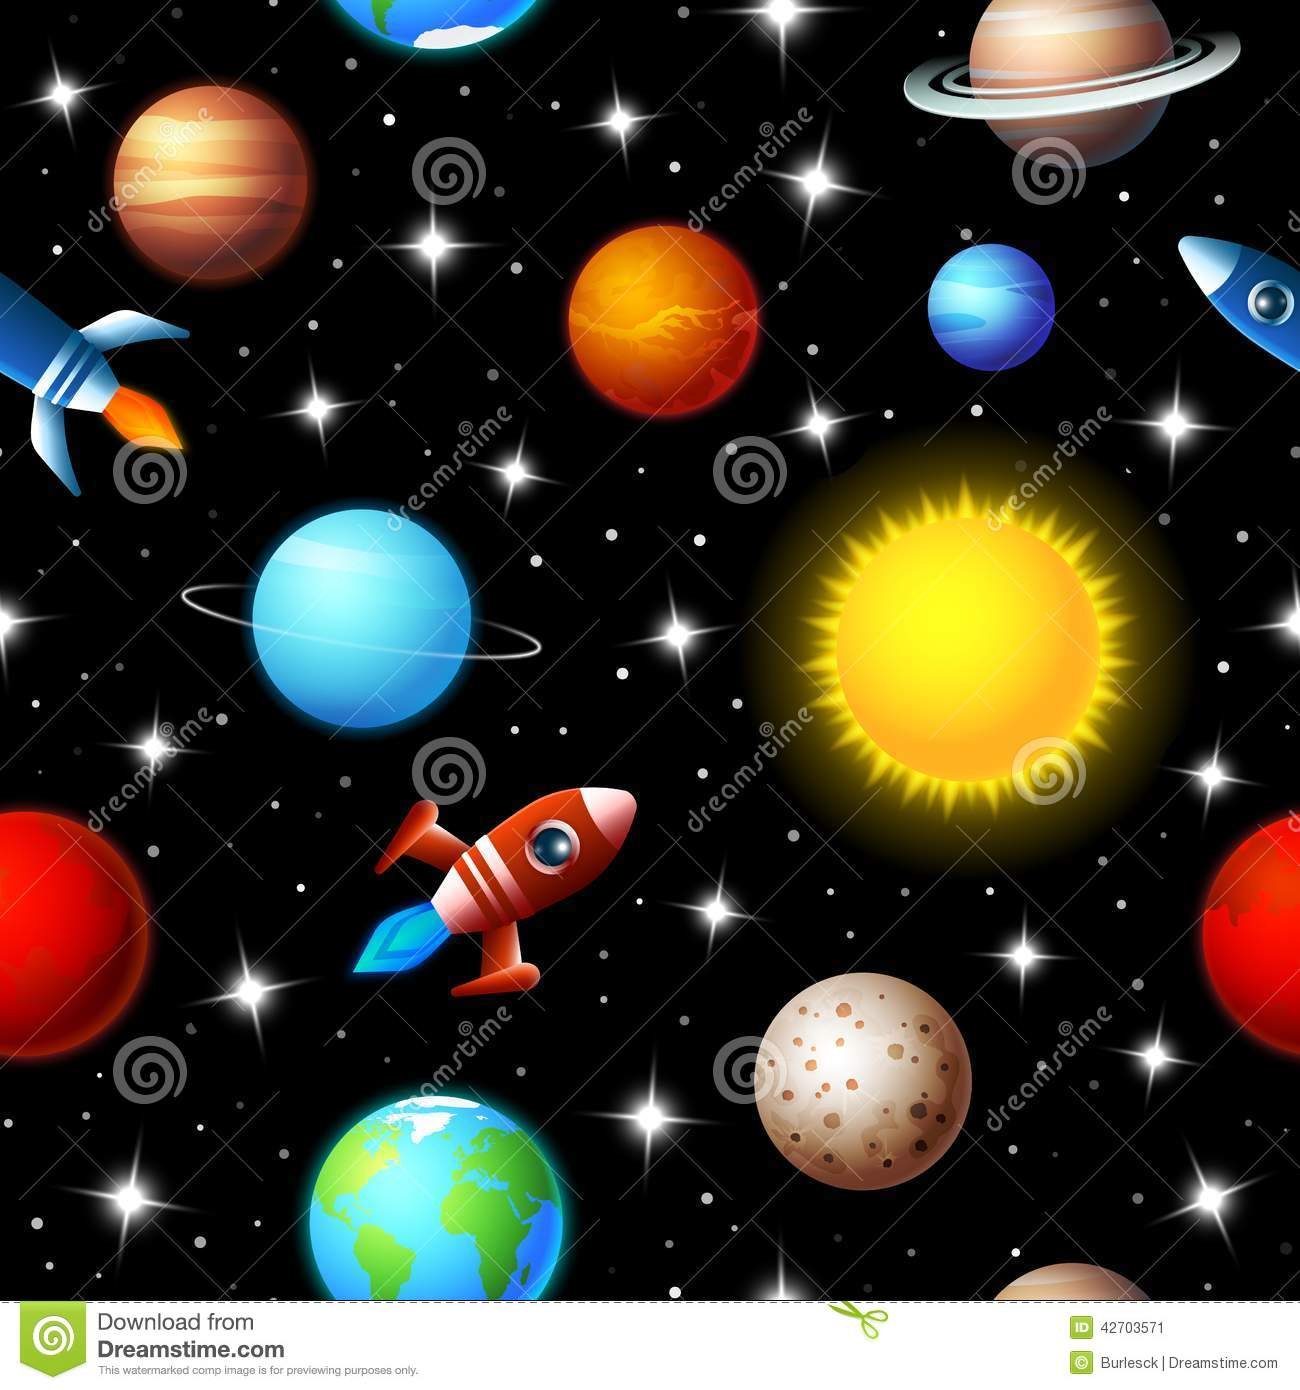 Seamless kids design of rockets and planets stock vector for Outer image design